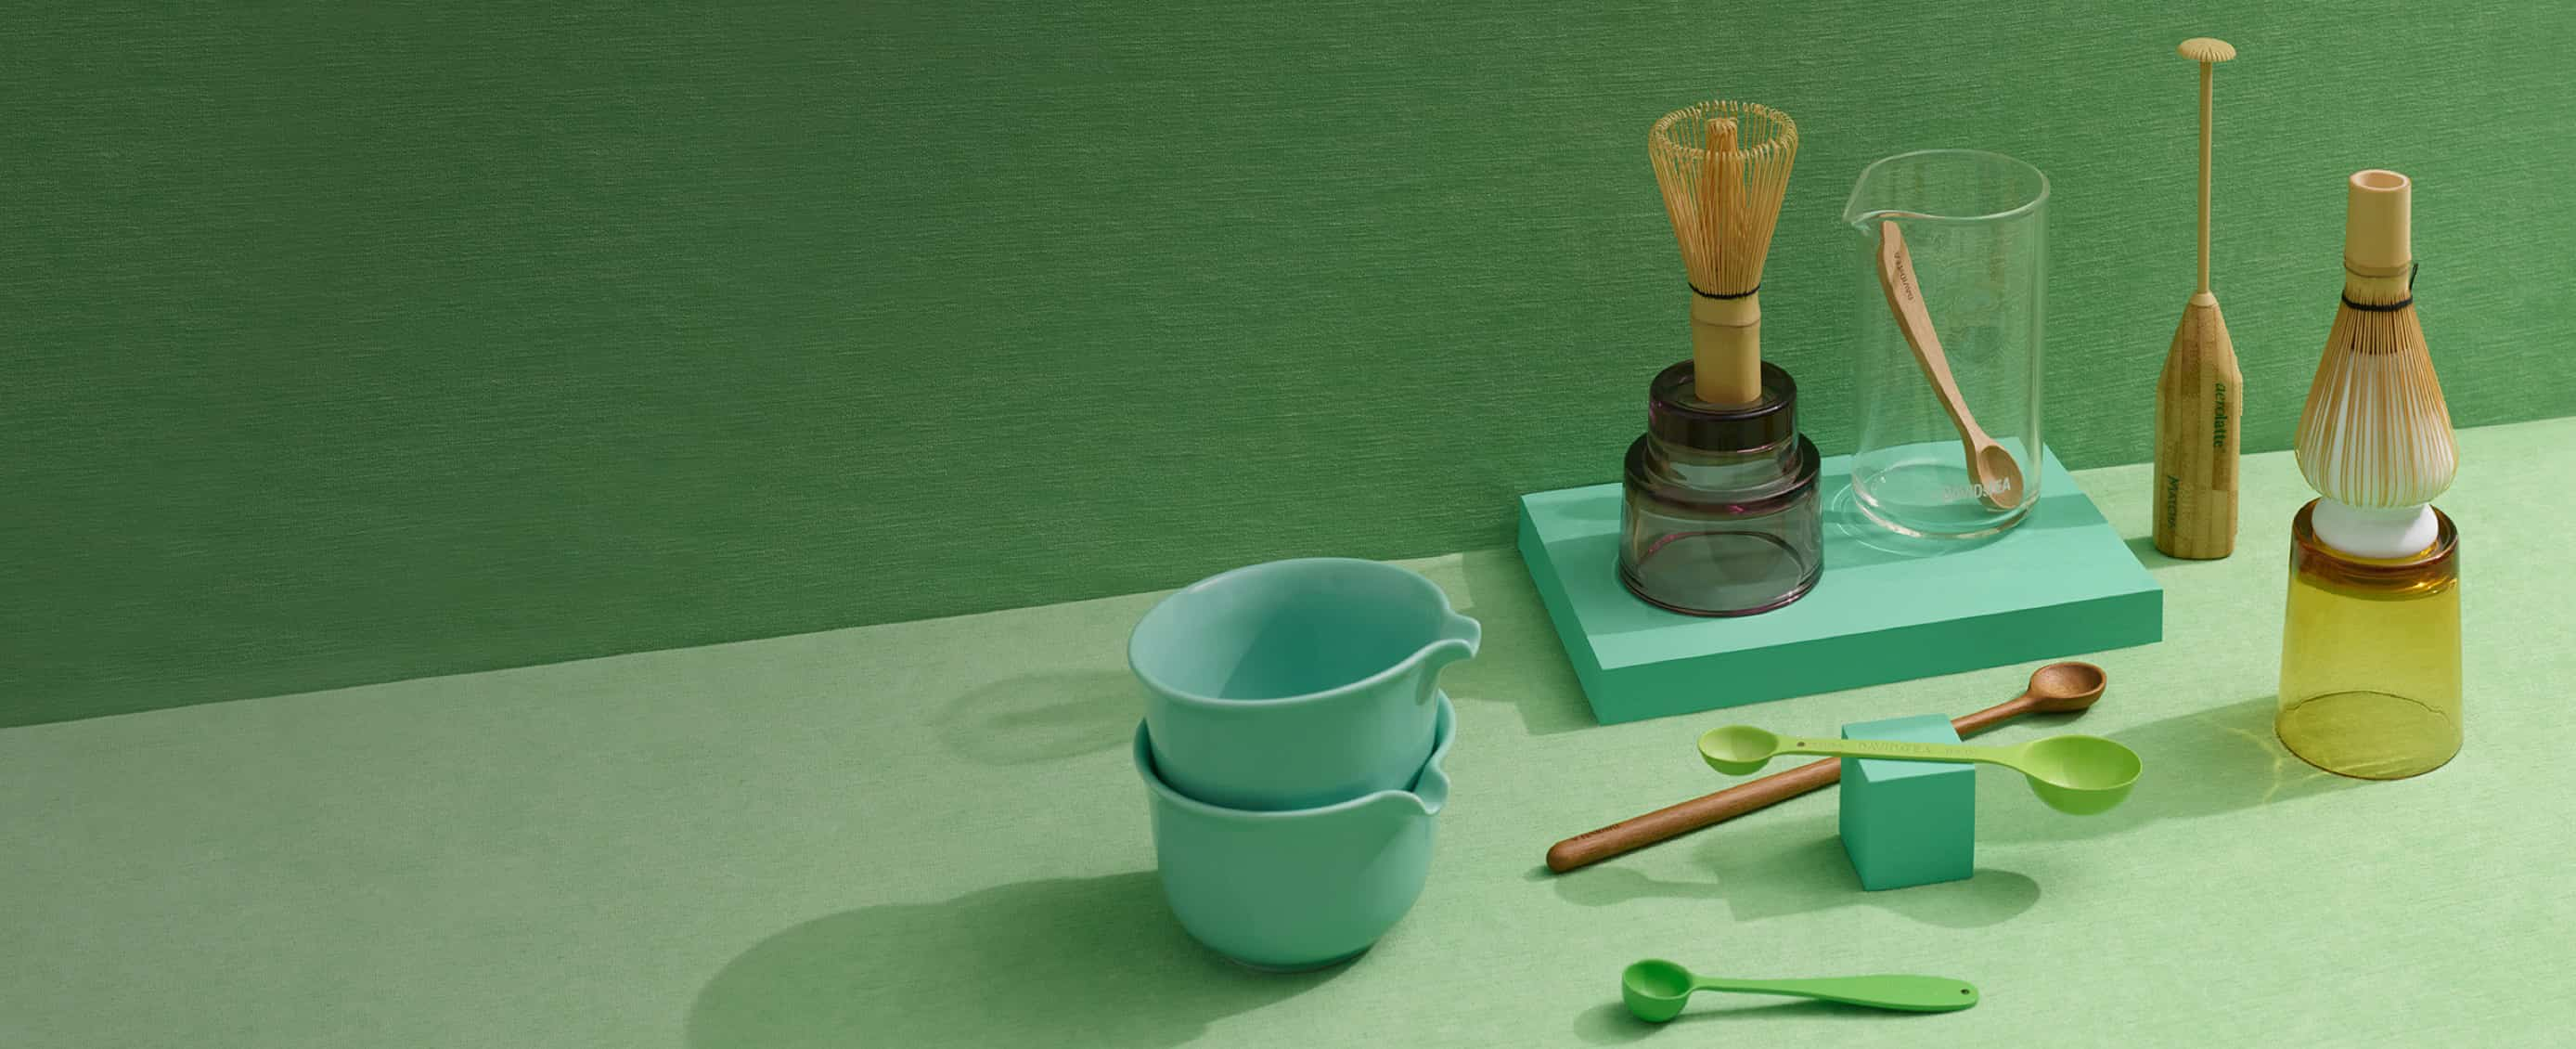 Empty matcha bowl with spout, bamboo matcha whisk on whisk holder, bamboo spoons, clear glass beaker.